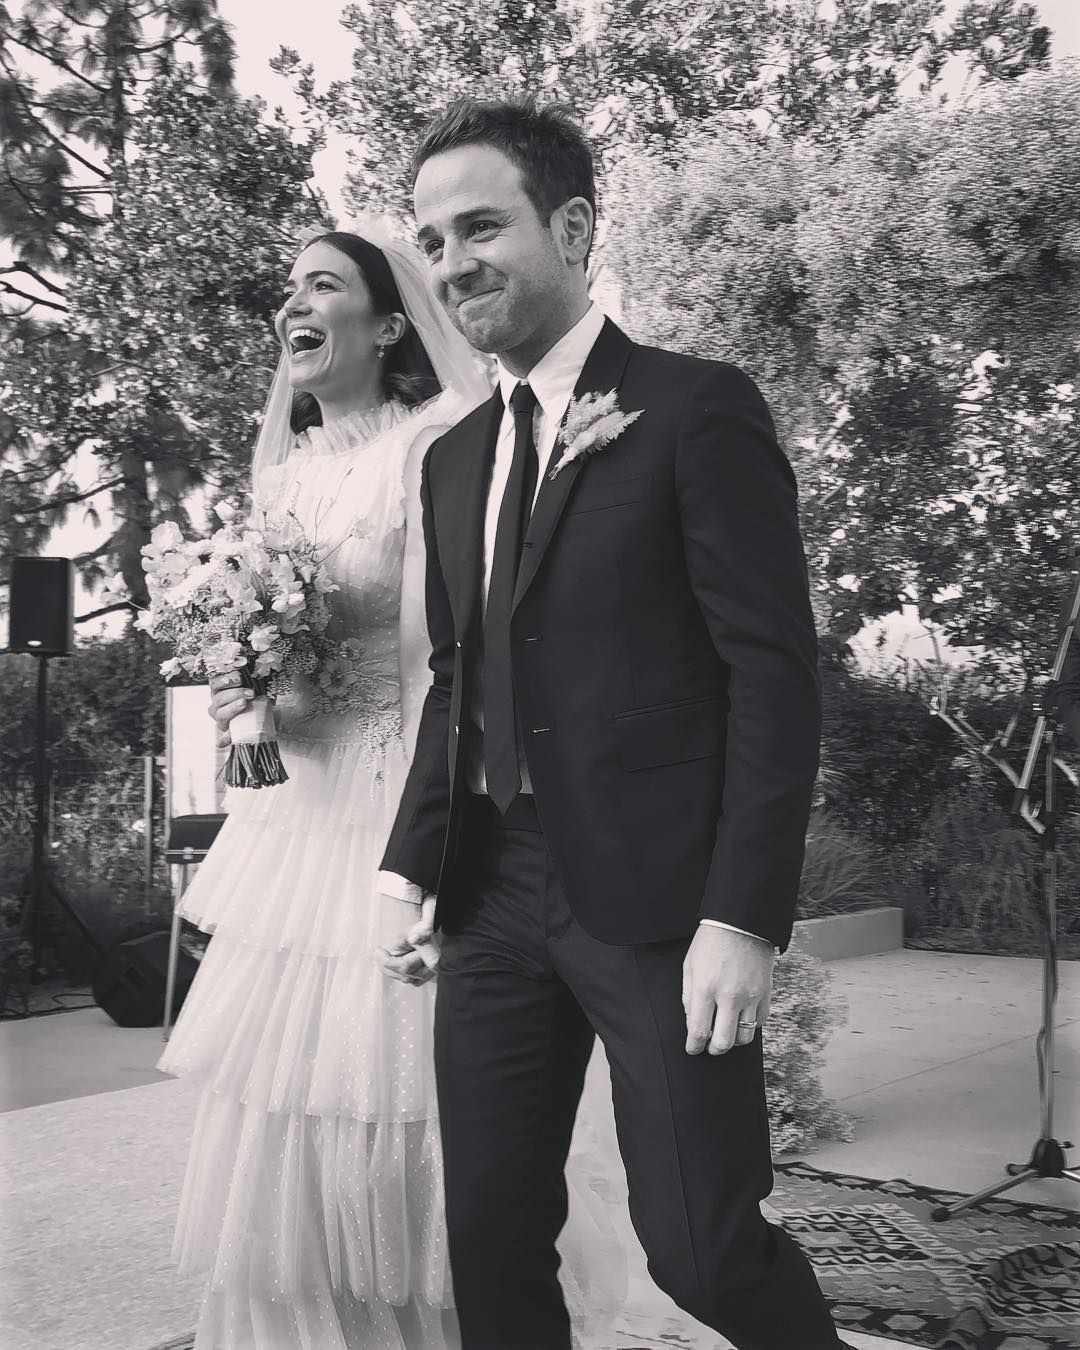 Who Is Mandy Moore's Husband, Taylor Goldsmith? All About the Man She Met on Instagram